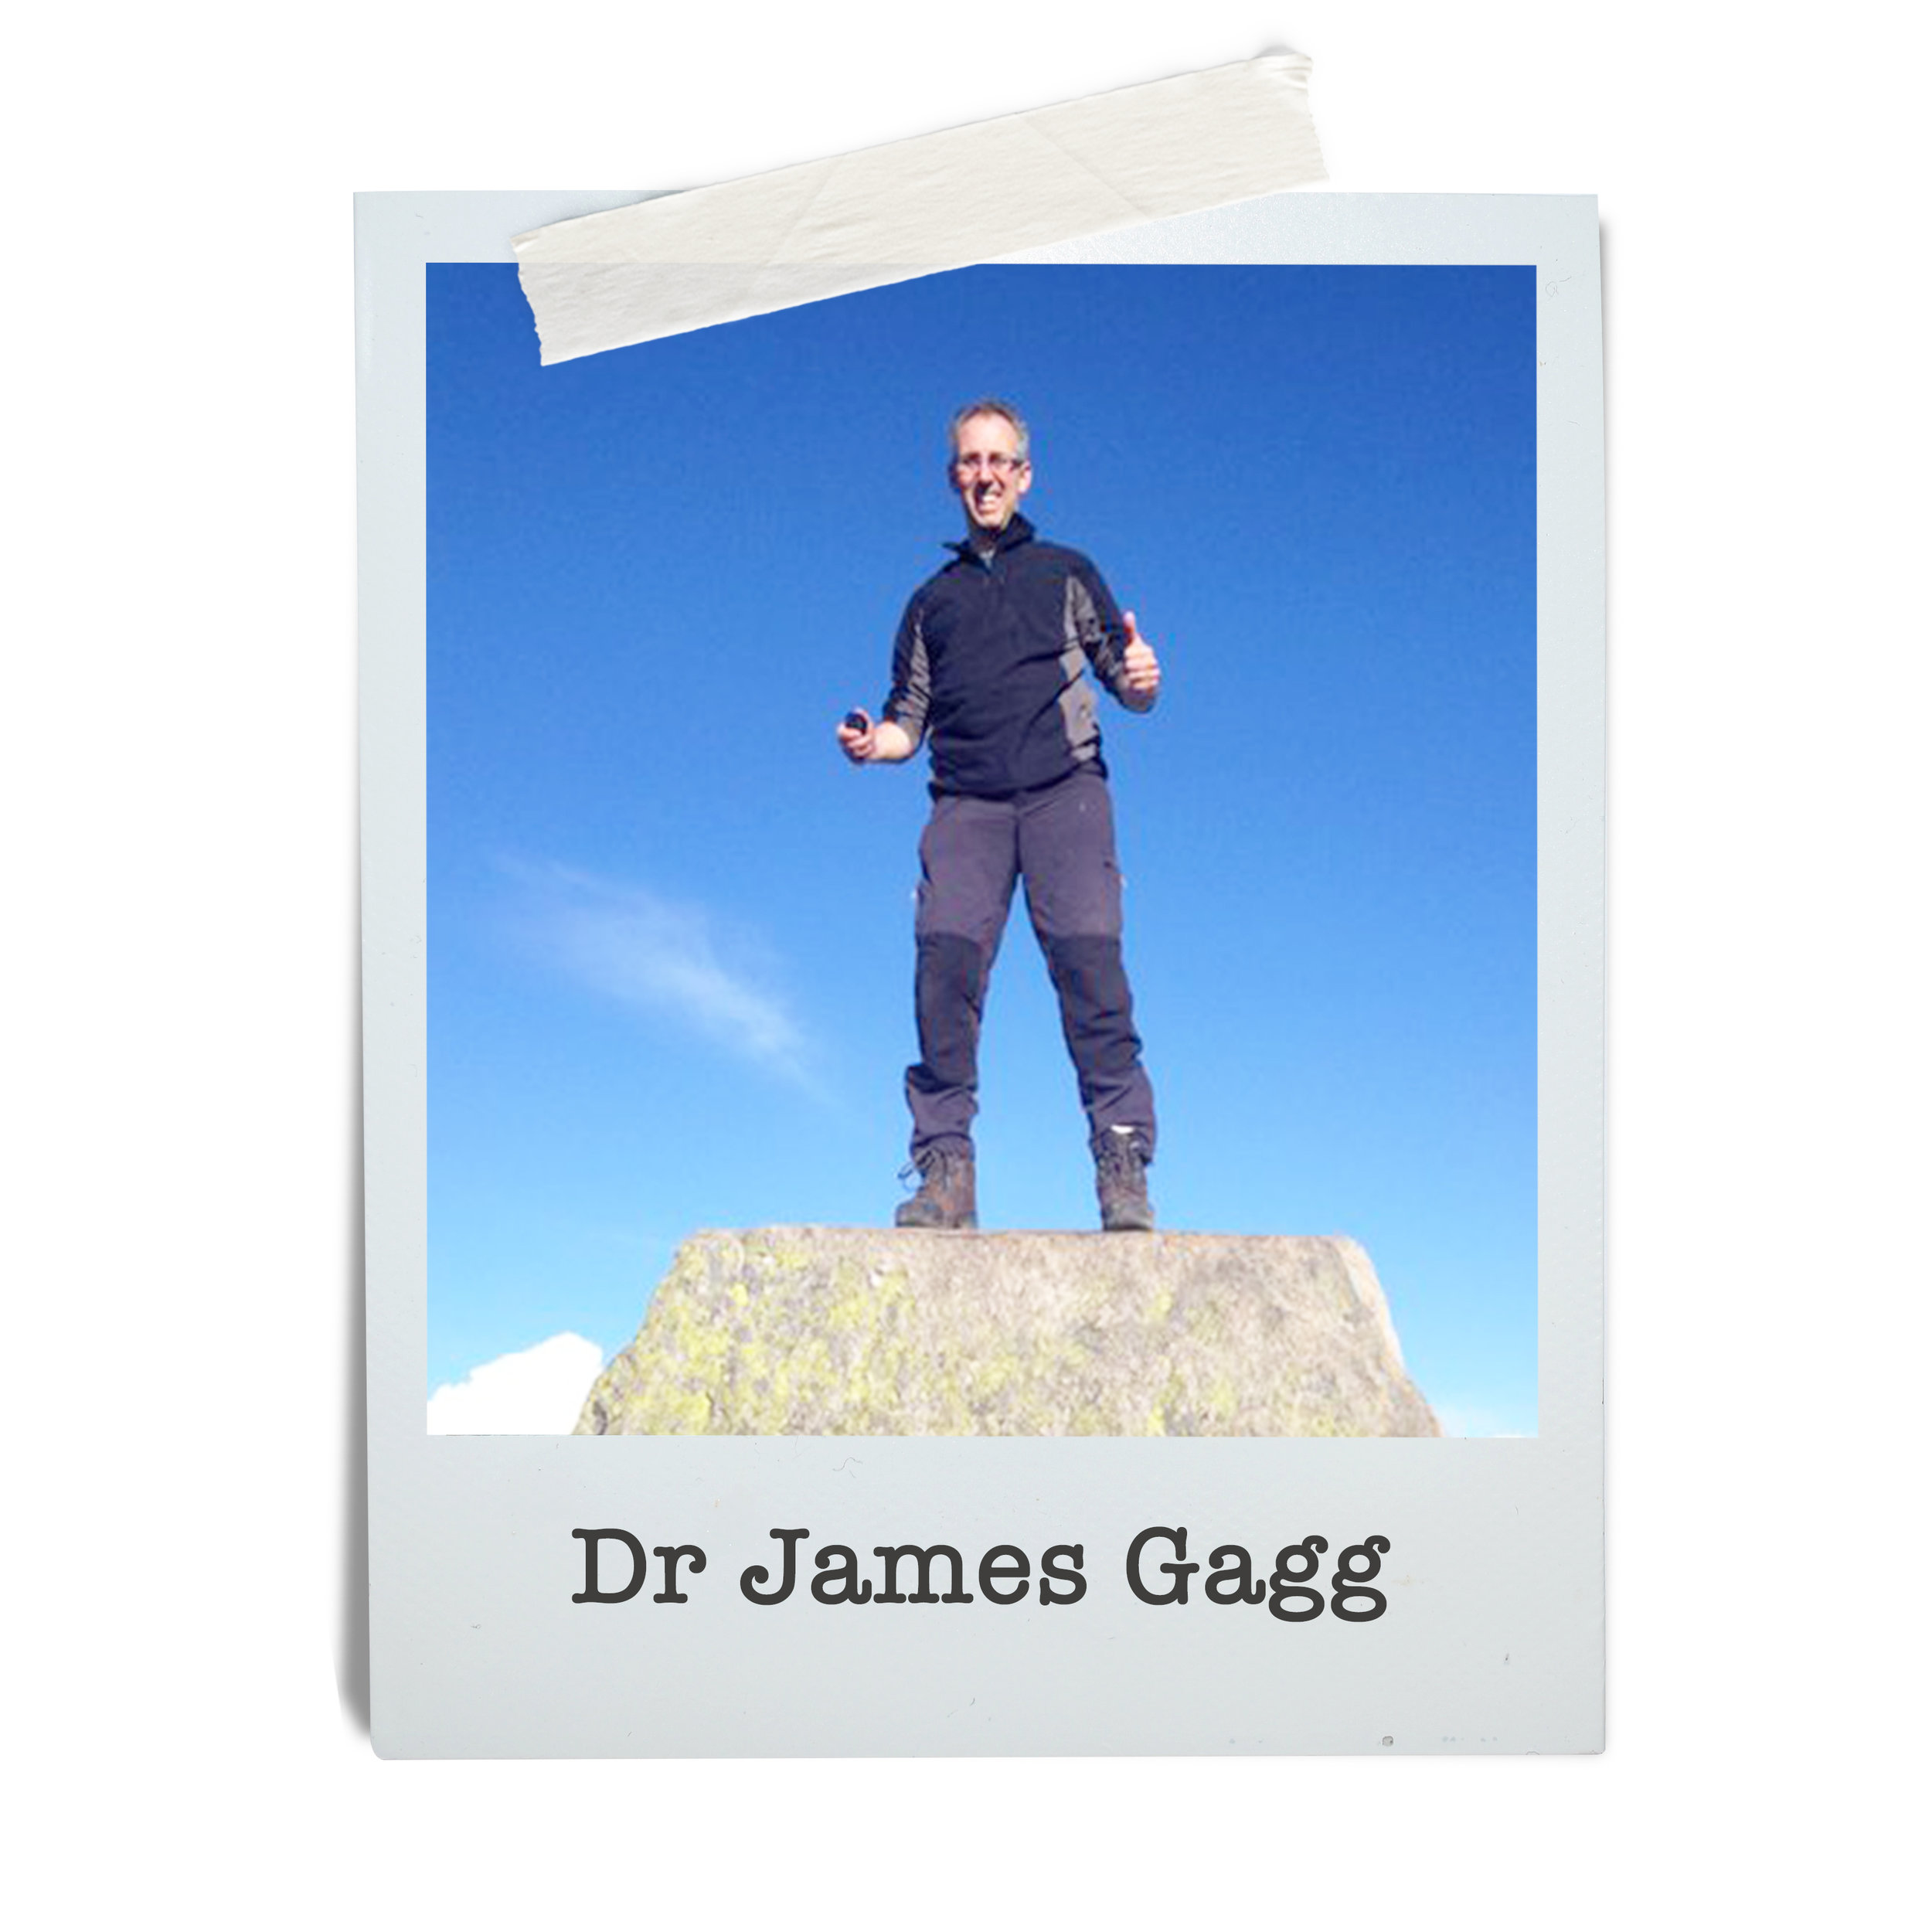 By Dr James Gagg   who is   a consultant in Emergency Medicine and the Clinical Director of an A&E department